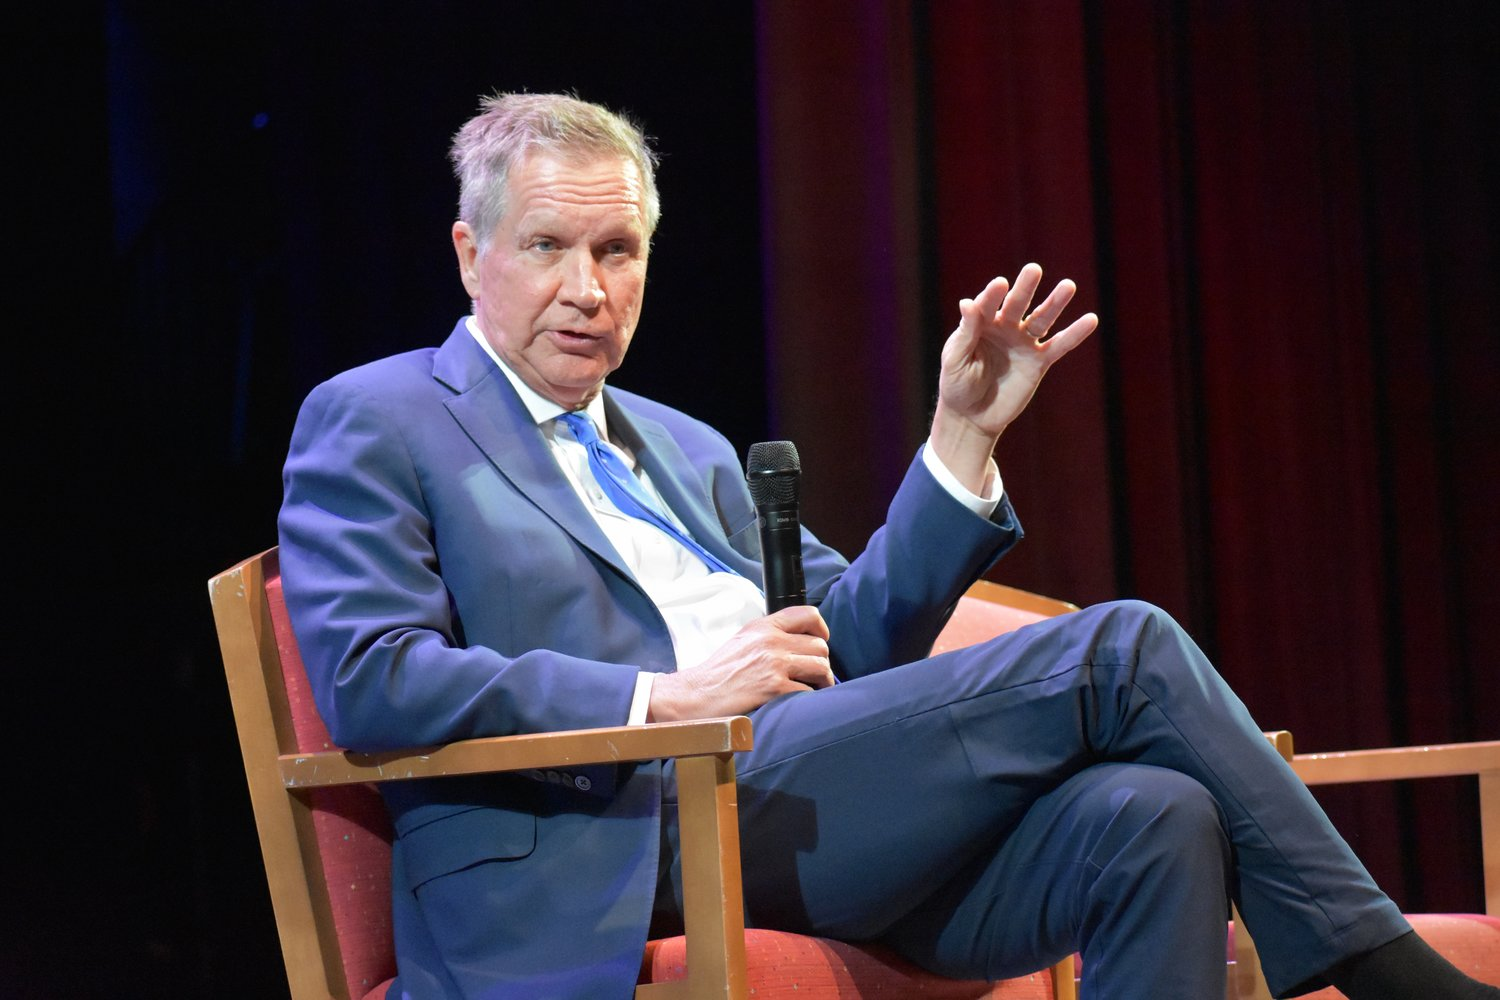 Former Ohio Gov. John Kasich visited the Madison Theatre at Molloy College on April 10 to speak about making a difference in one's community and the world. Above, he first spoke with students.